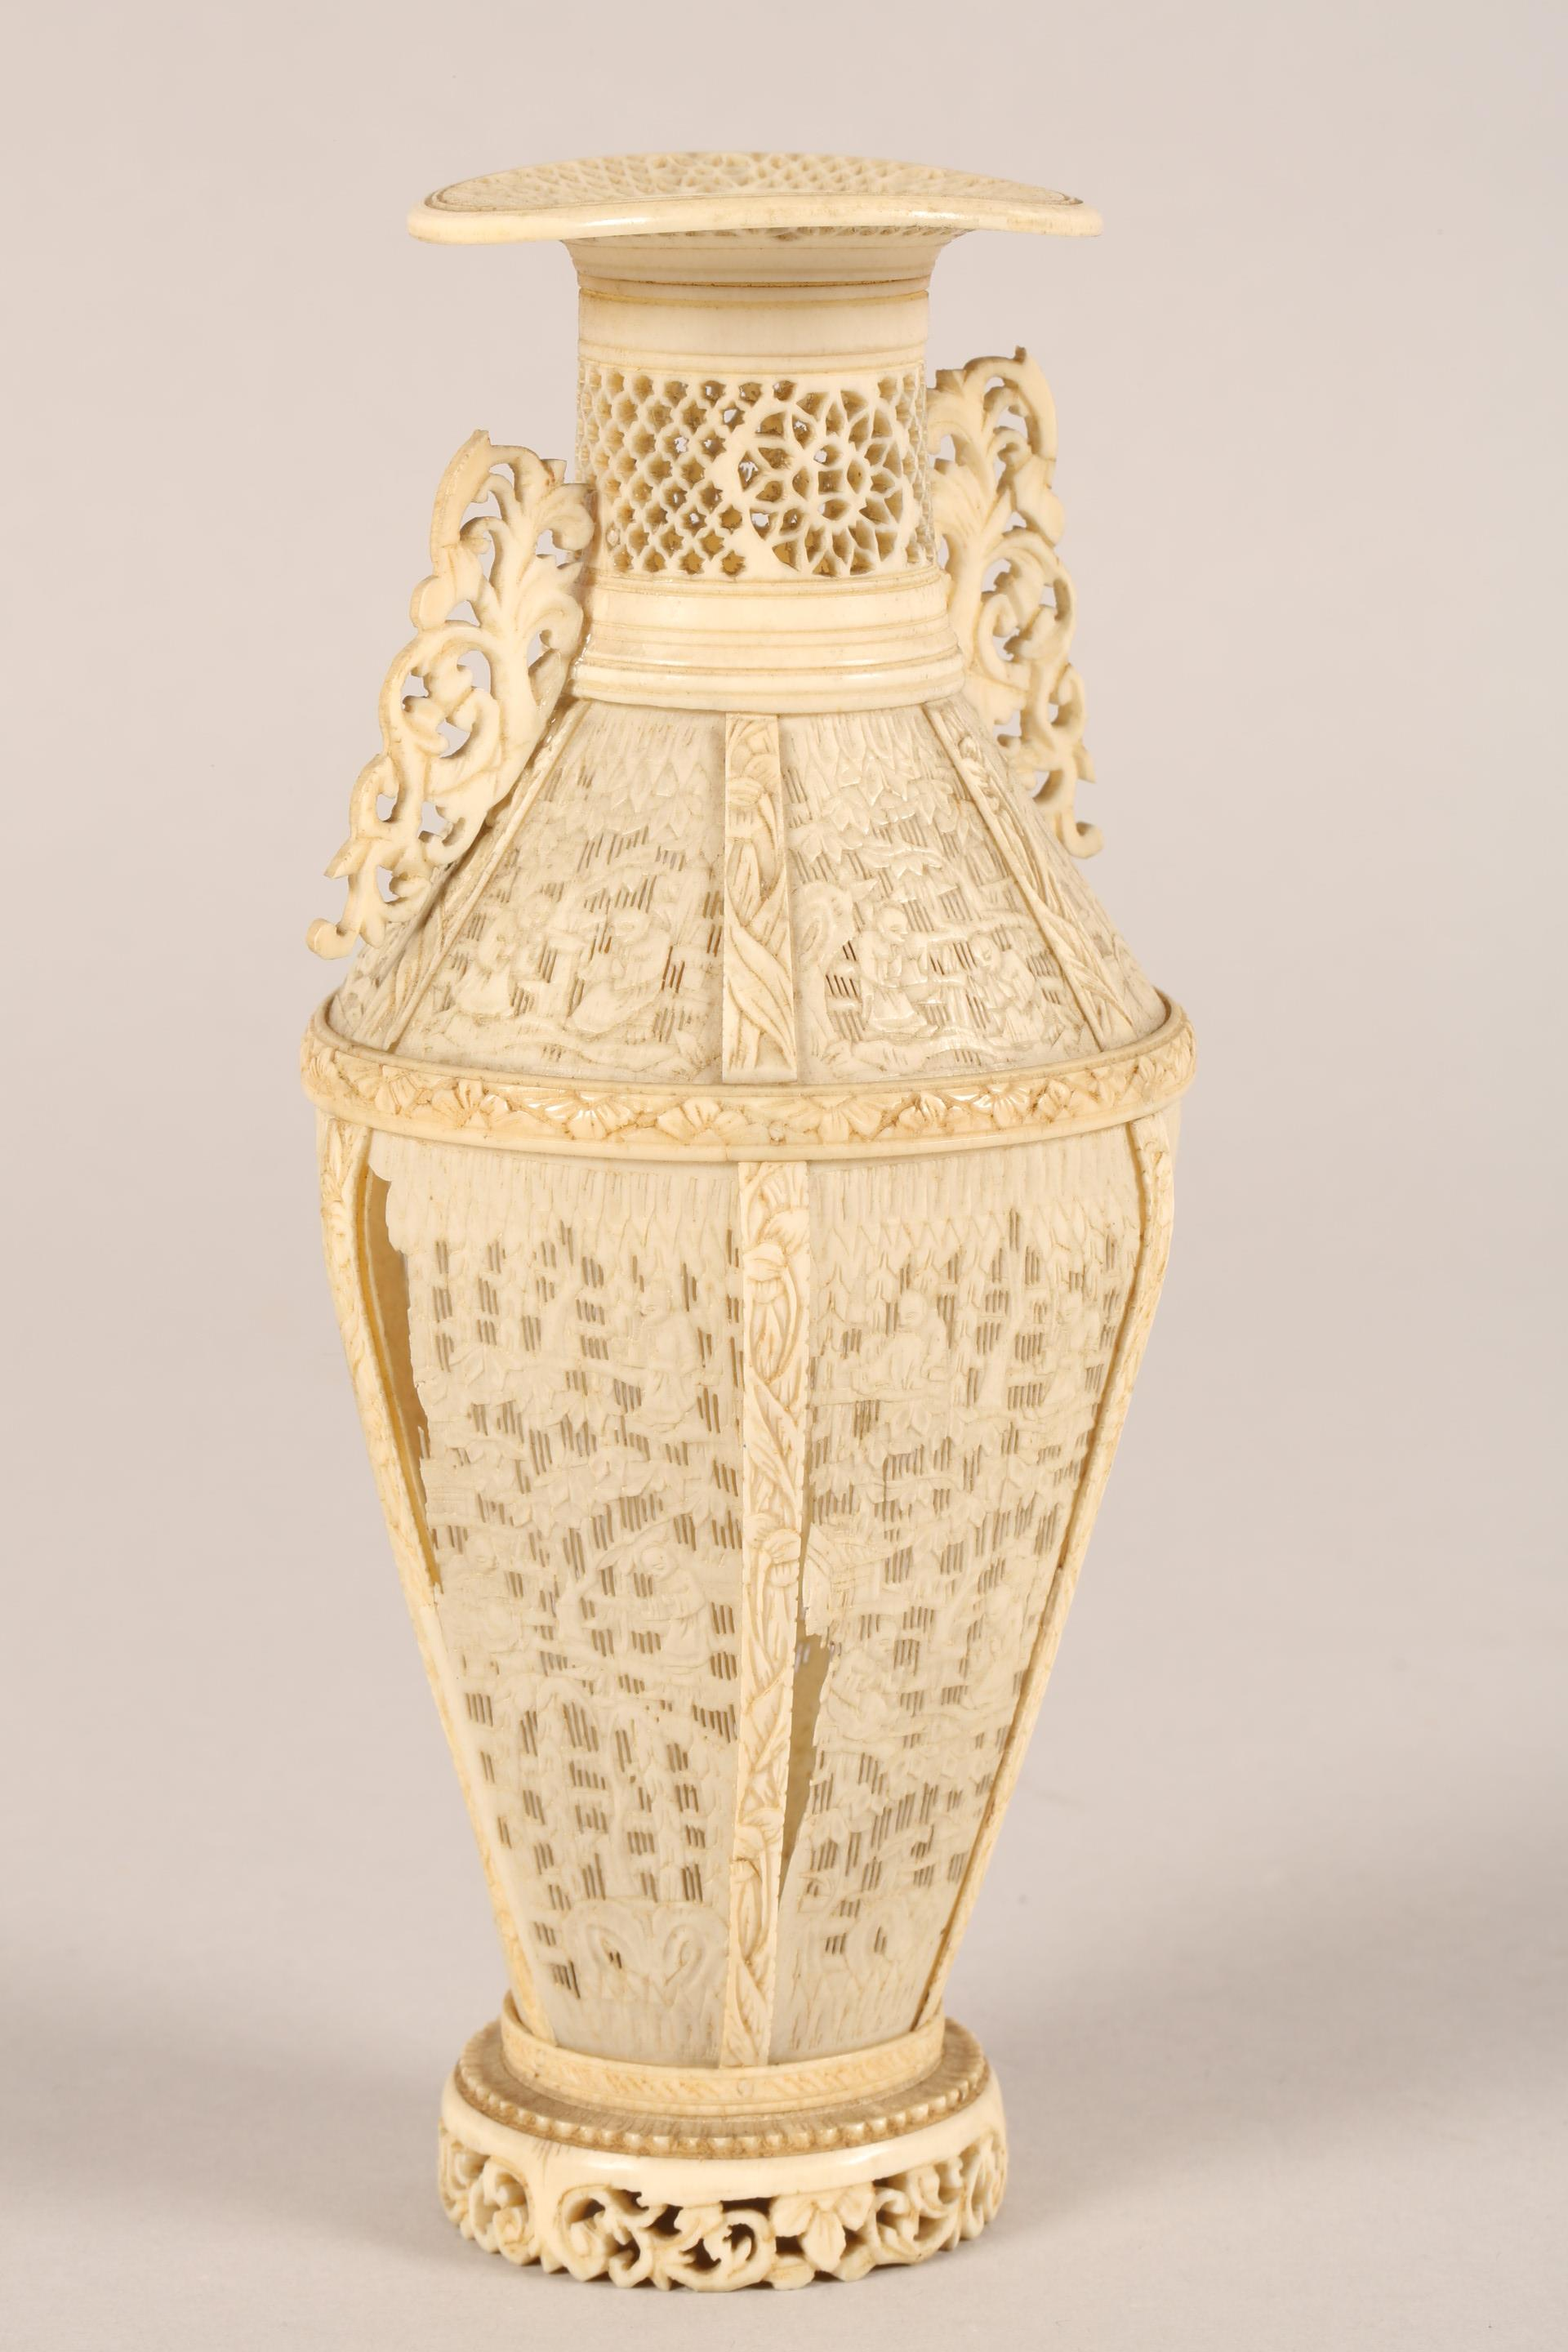 19th century Chinese Canton reticulated ivory twin handled vase (minor damages) 17.5cm high. - Image 5 of 7